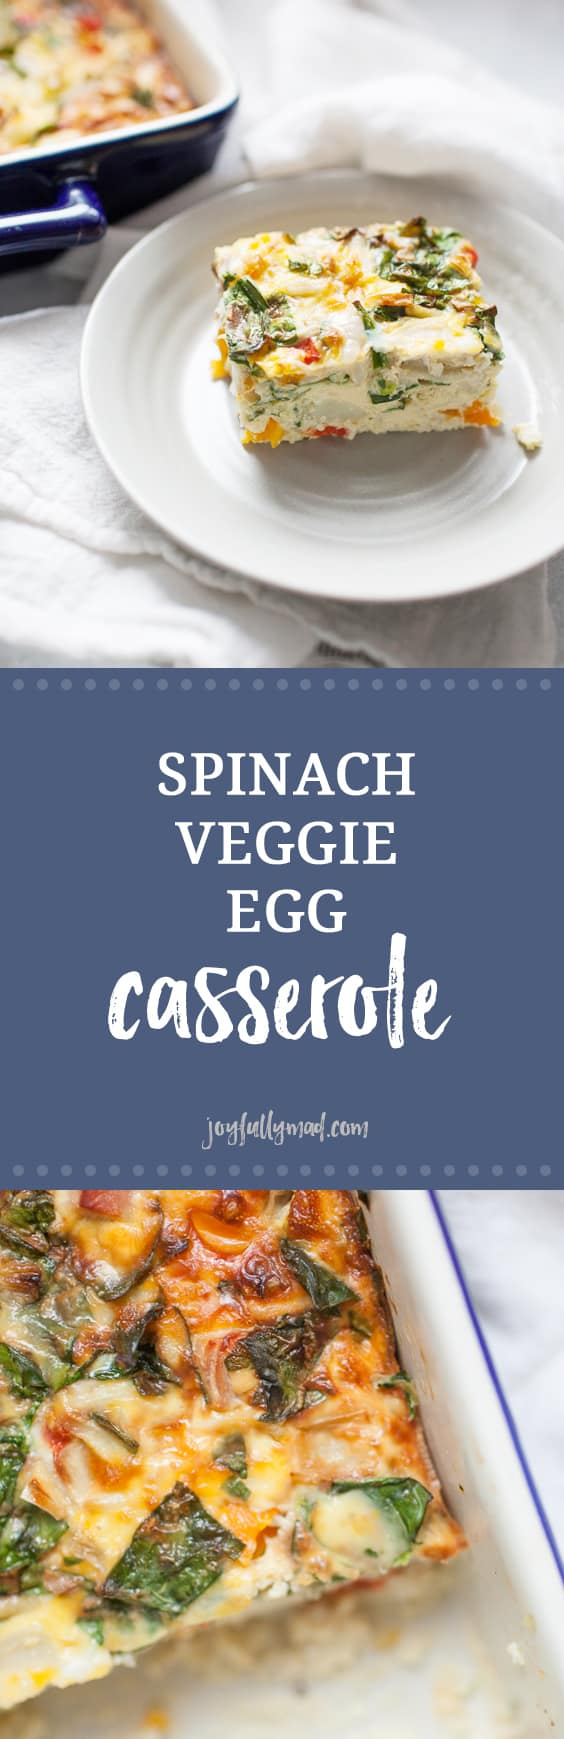 Looking for an easy breakfast to make for a crowd or to prep for the week ahead? This spinach veggie egg casserole is packed with veggies and can be customized to include meat or be vegetarian! This is the kitchen sink of breakfast casseroles that can be customized to use up those veggies in your fridge! Get ready for a delicious, filling breakfast for the whole family to enjoy.